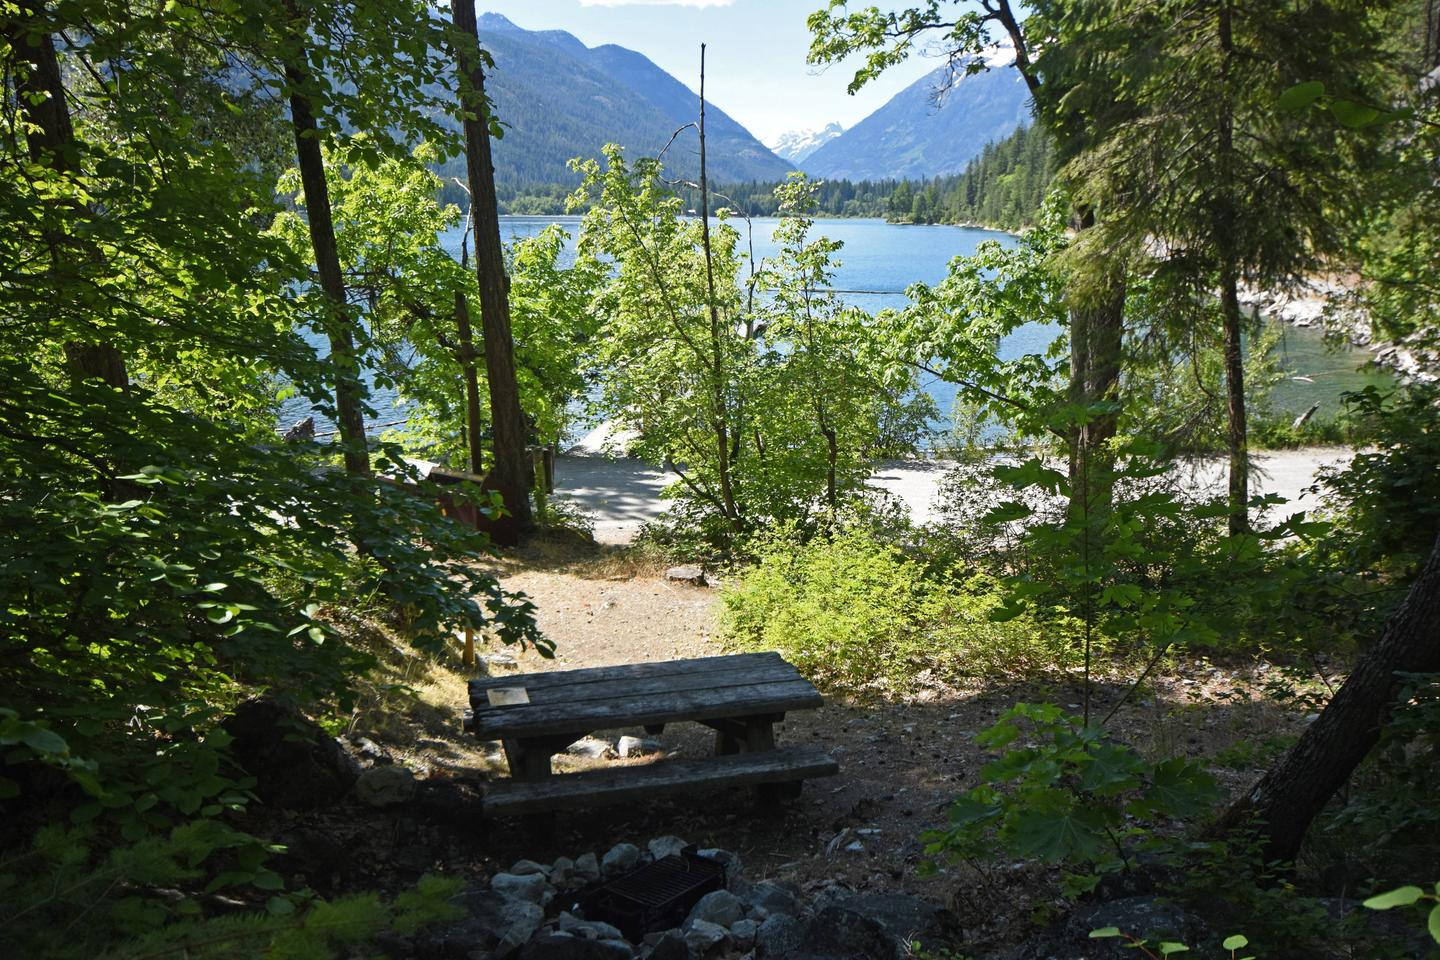 Campsite with picnic table and tent pad overlooking lakePurple Point Site 2